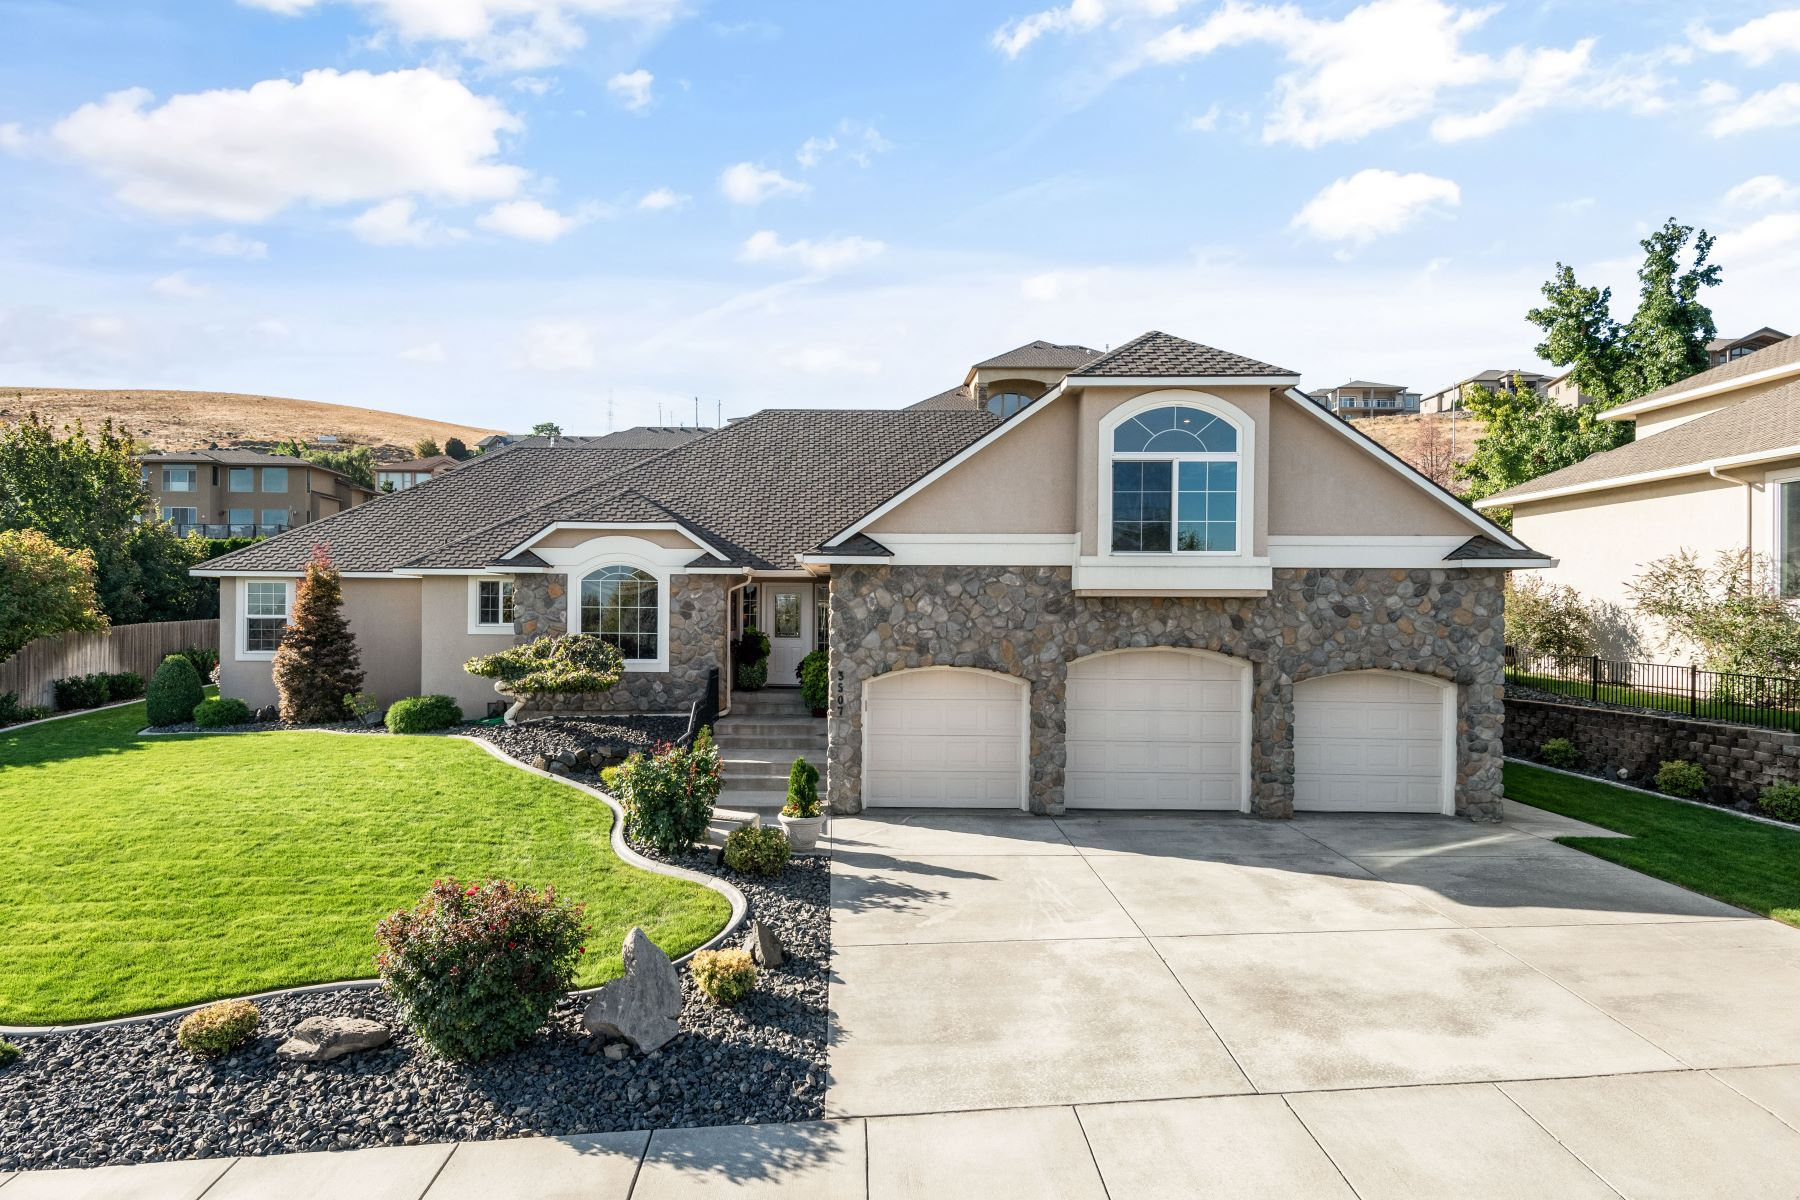 Single Family Homes for Sale at Custom Built 3507 W 42nd Avenue Kennewick, Washington 99337 United States